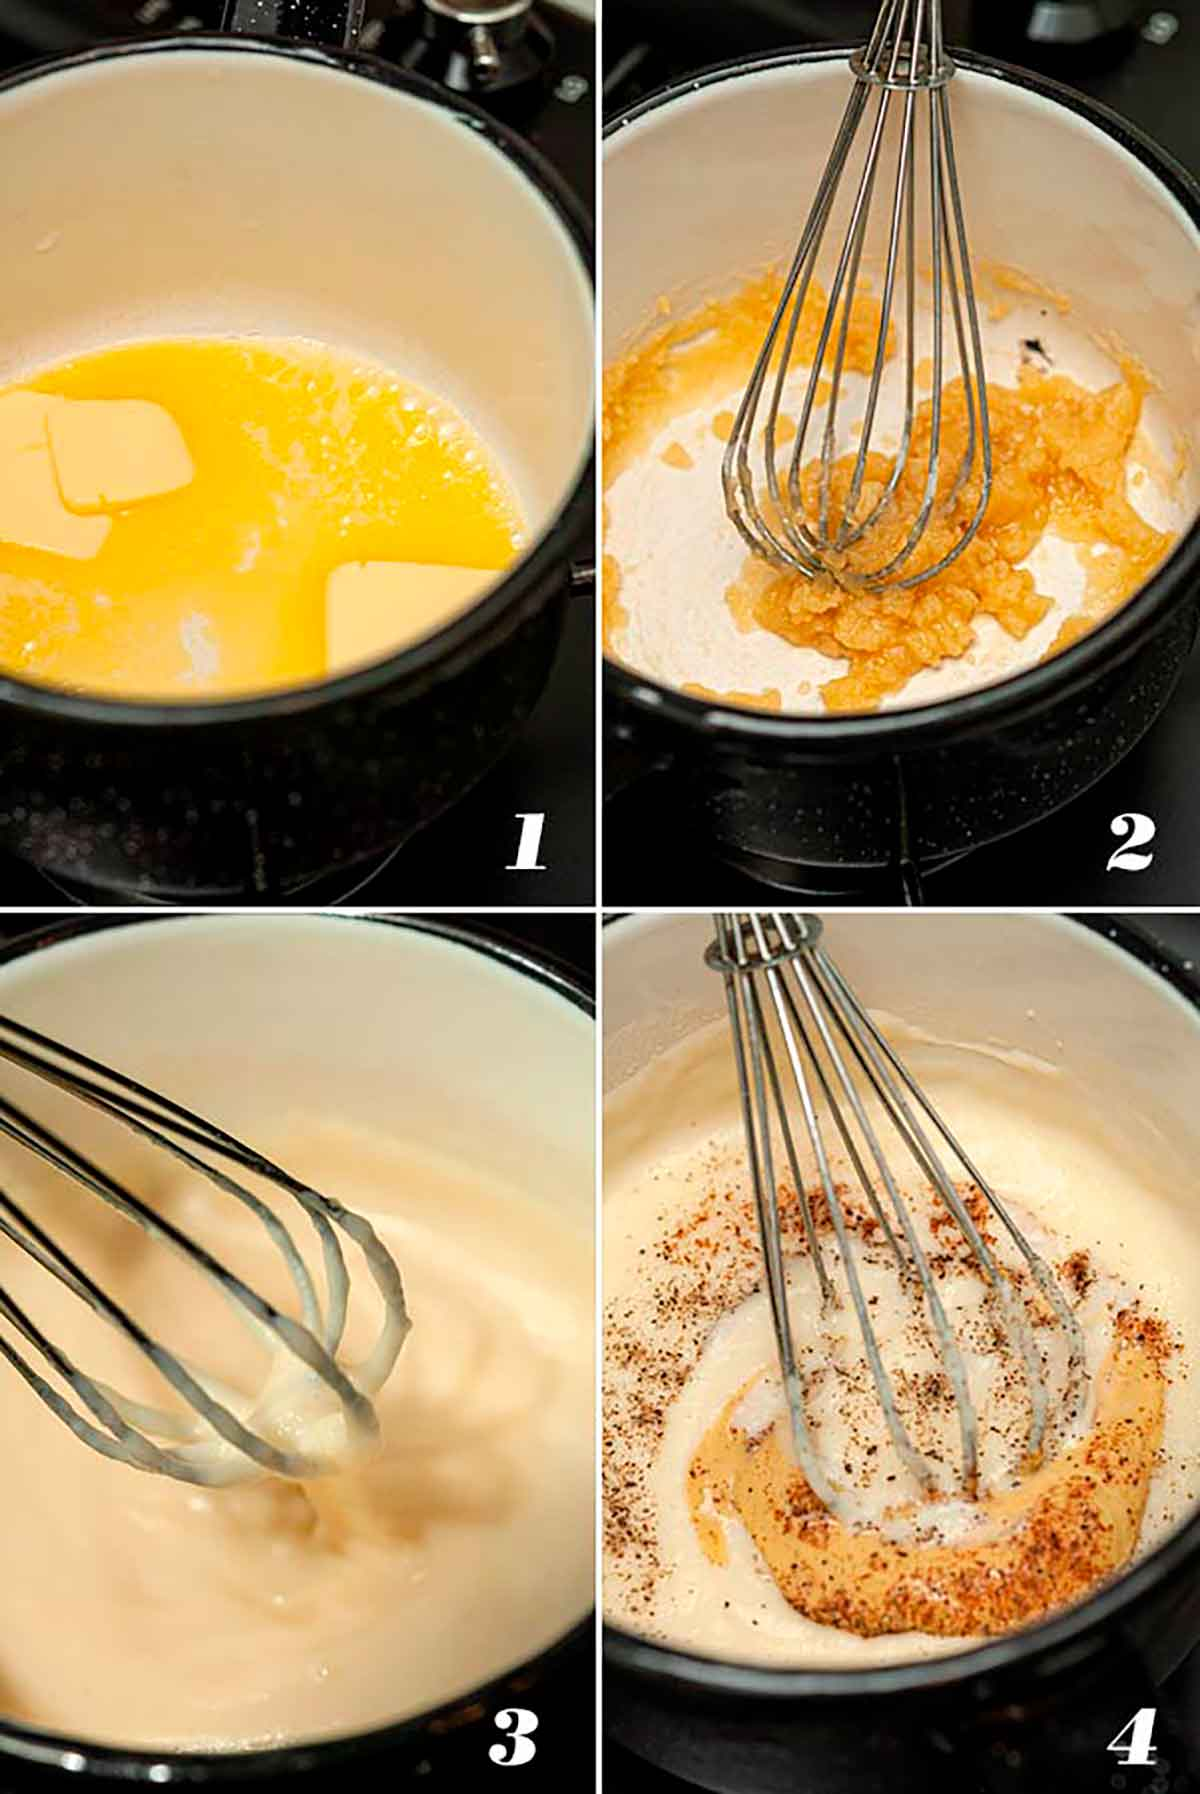 A collage of 4 numbered images showing how to make béchamel sauce.